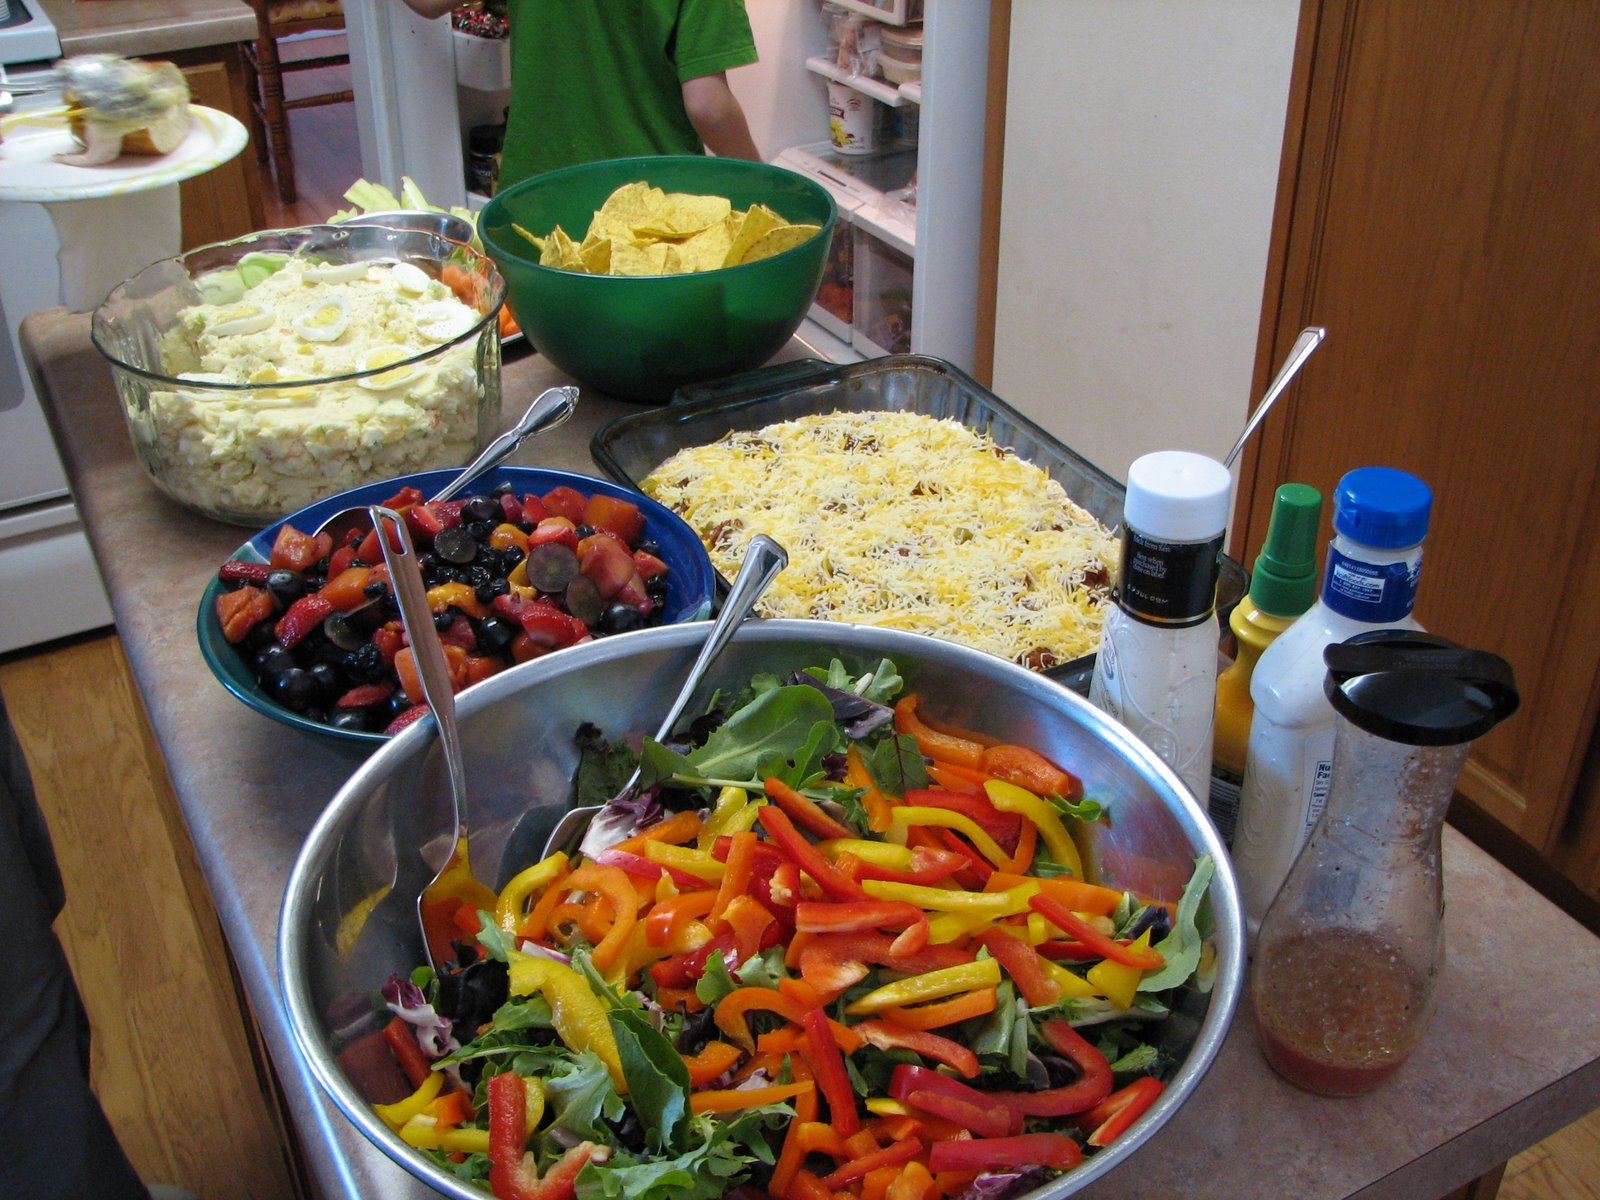 Catholic cuisine recipes for easter pentecost from the for Food bar on church